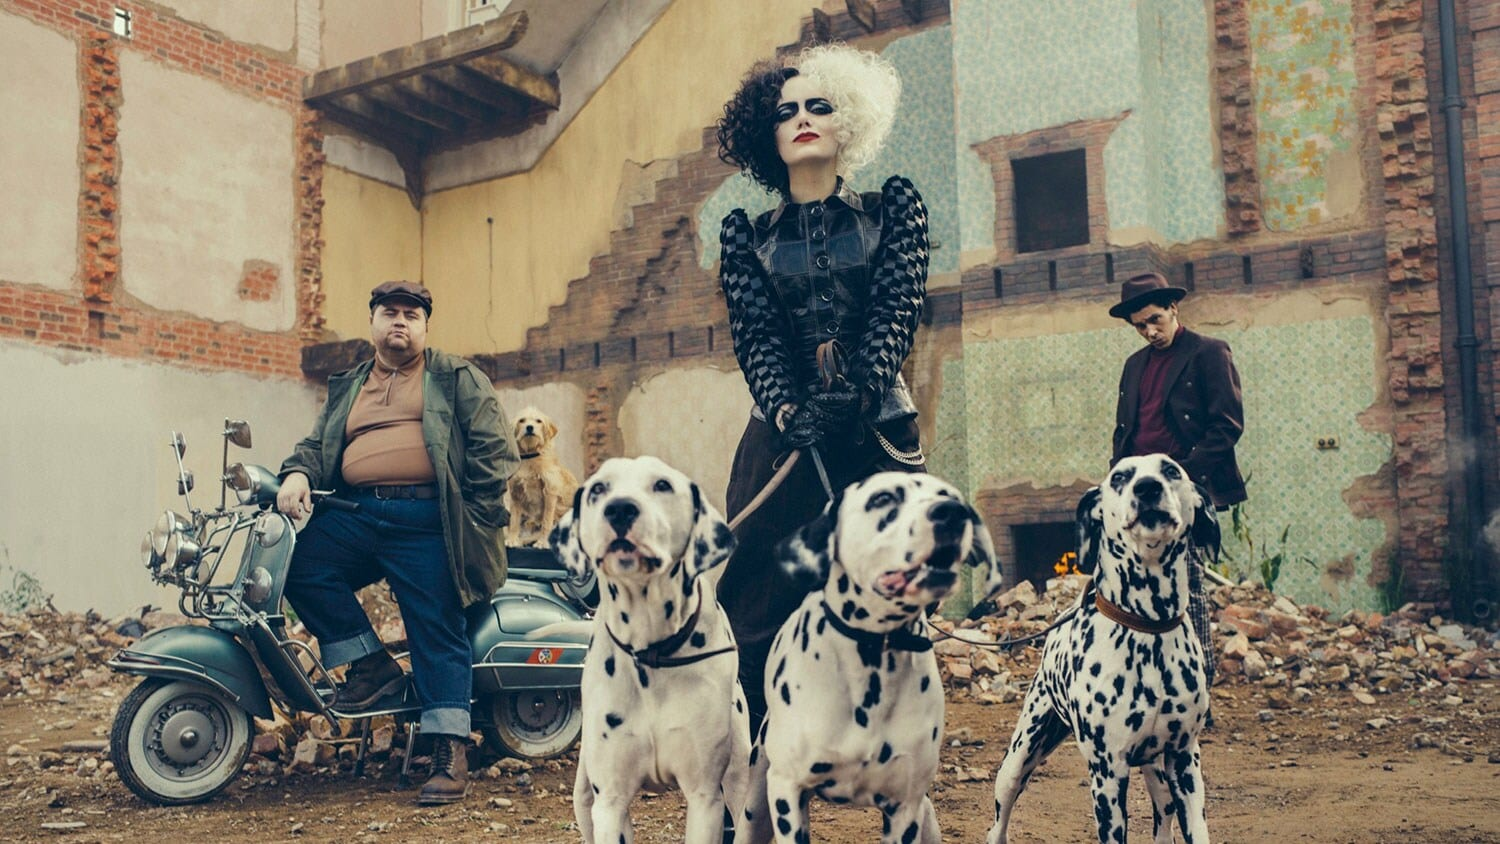 Emma Stone as Cruella de Vil holding three Dalmatians with her two sidekicks in the background